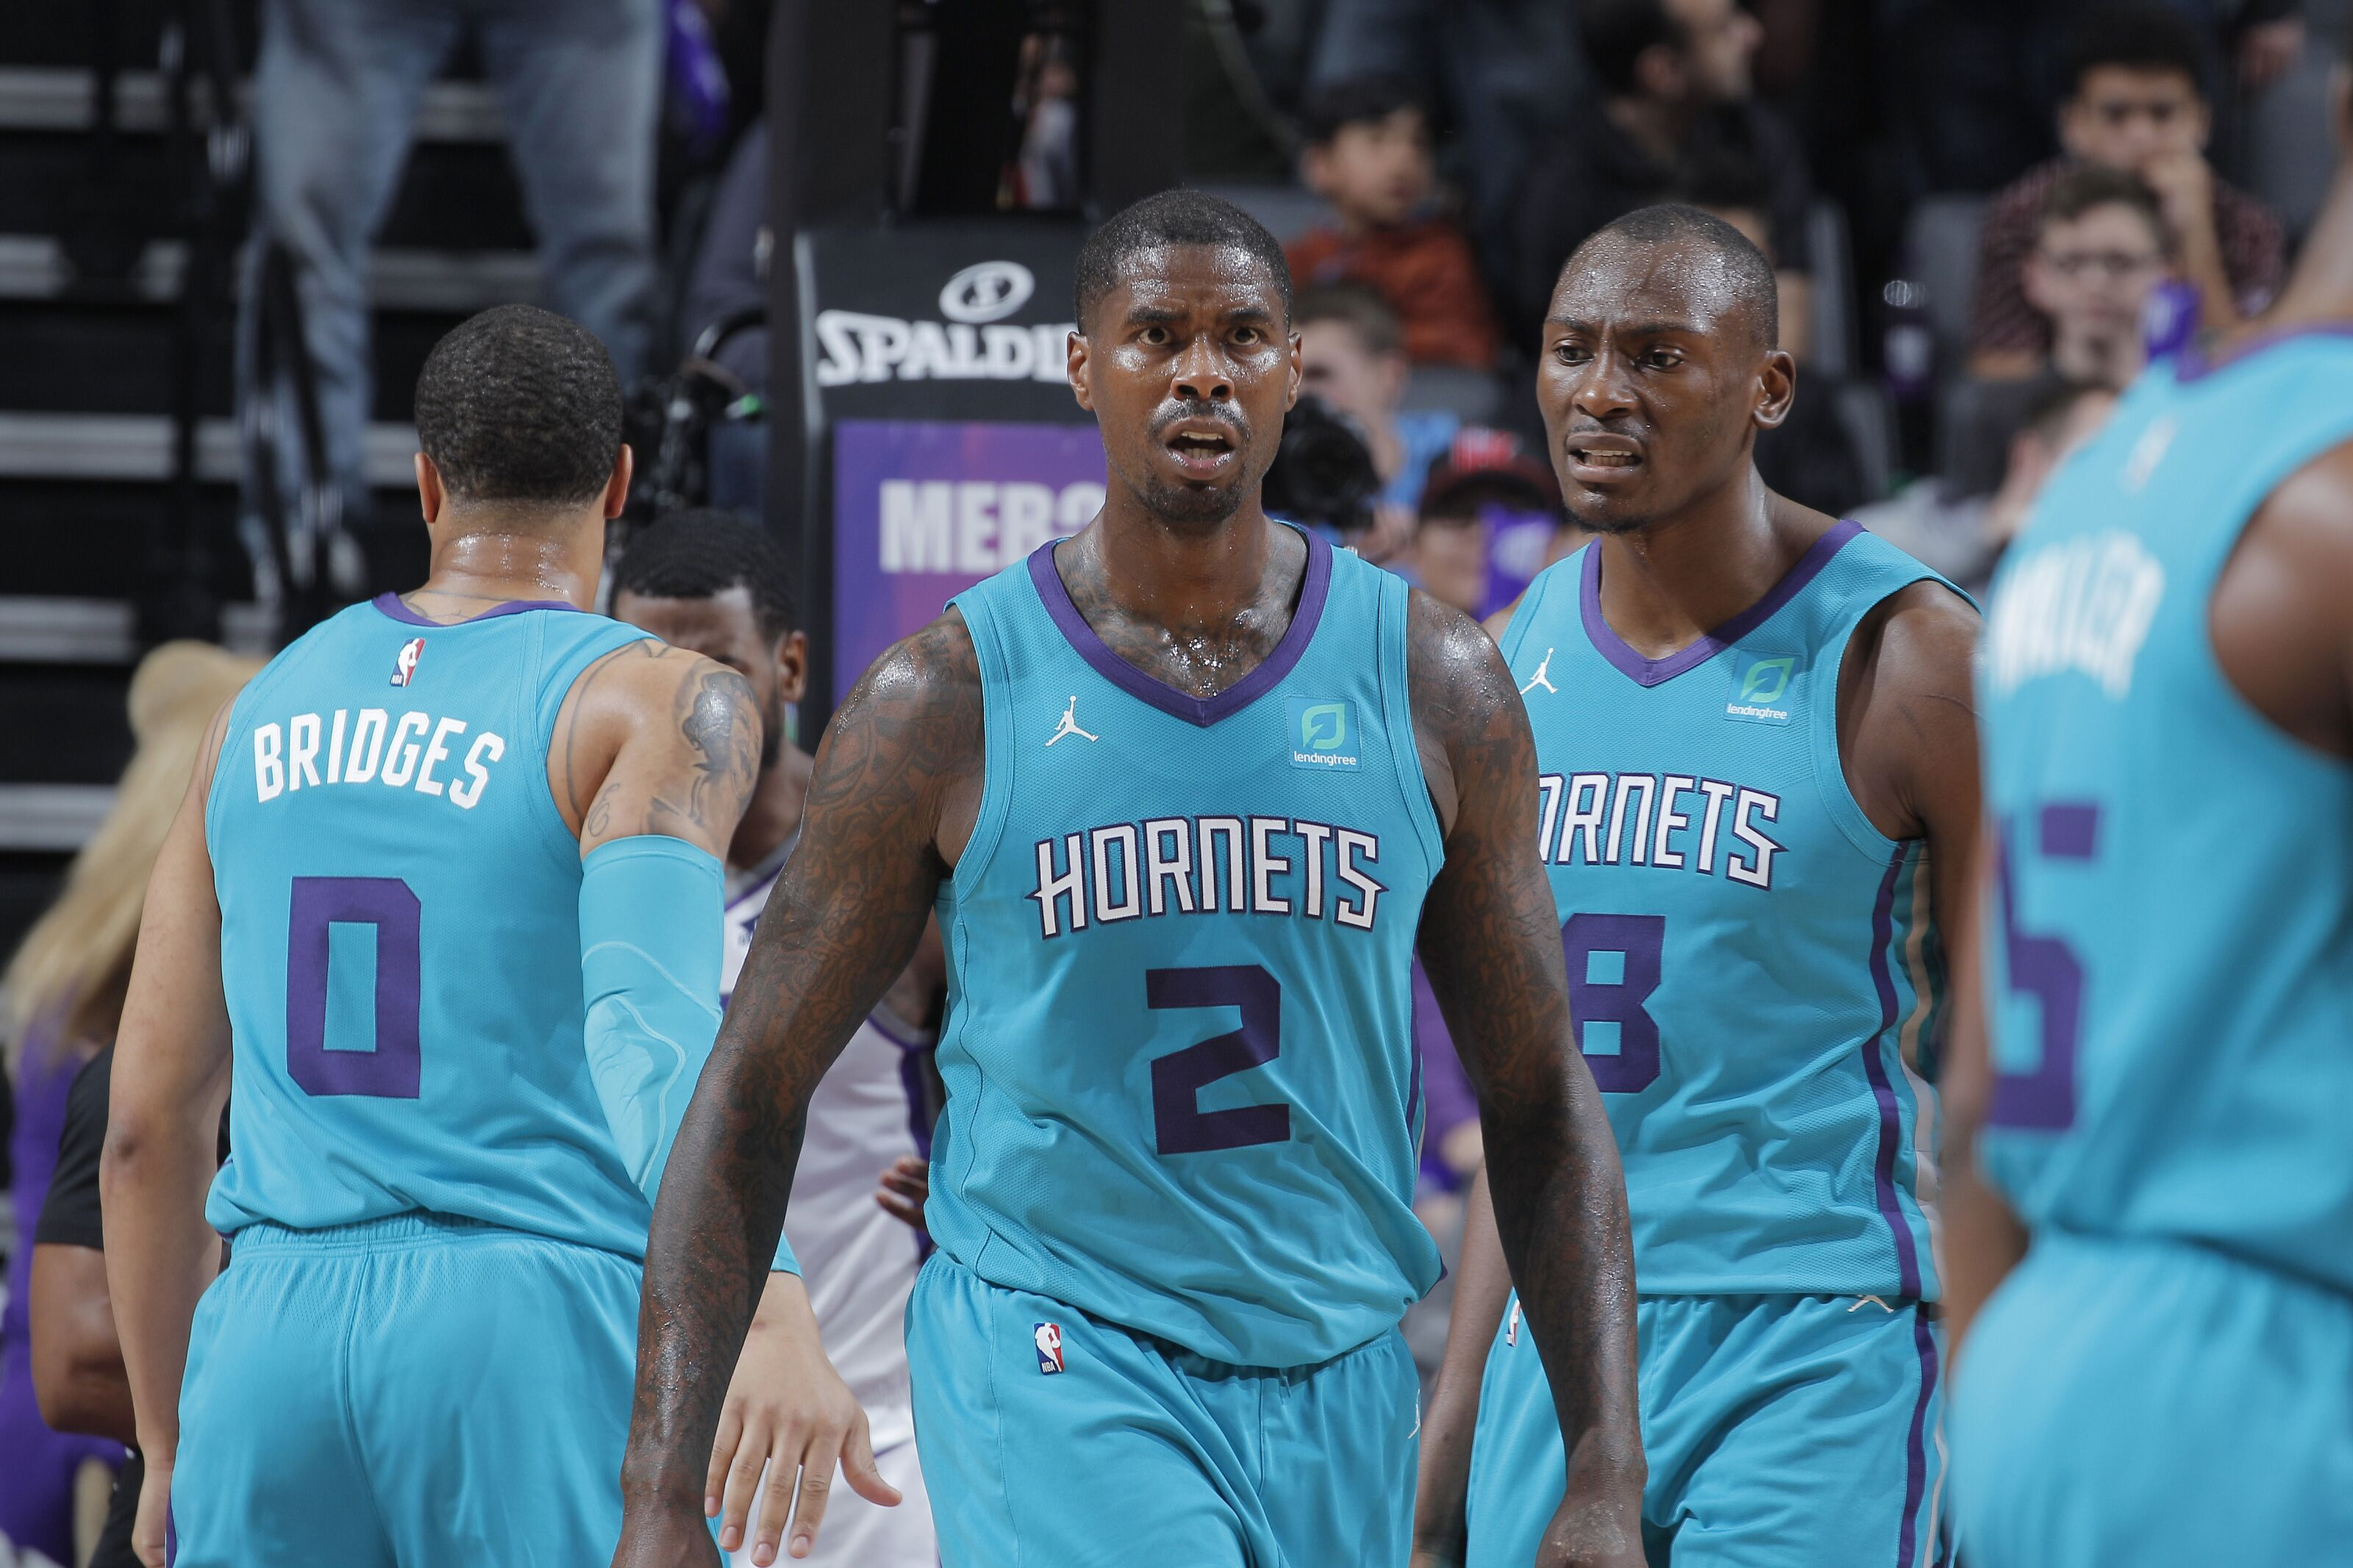 Charlotte Hornets: Who is the team's active leading scorer?